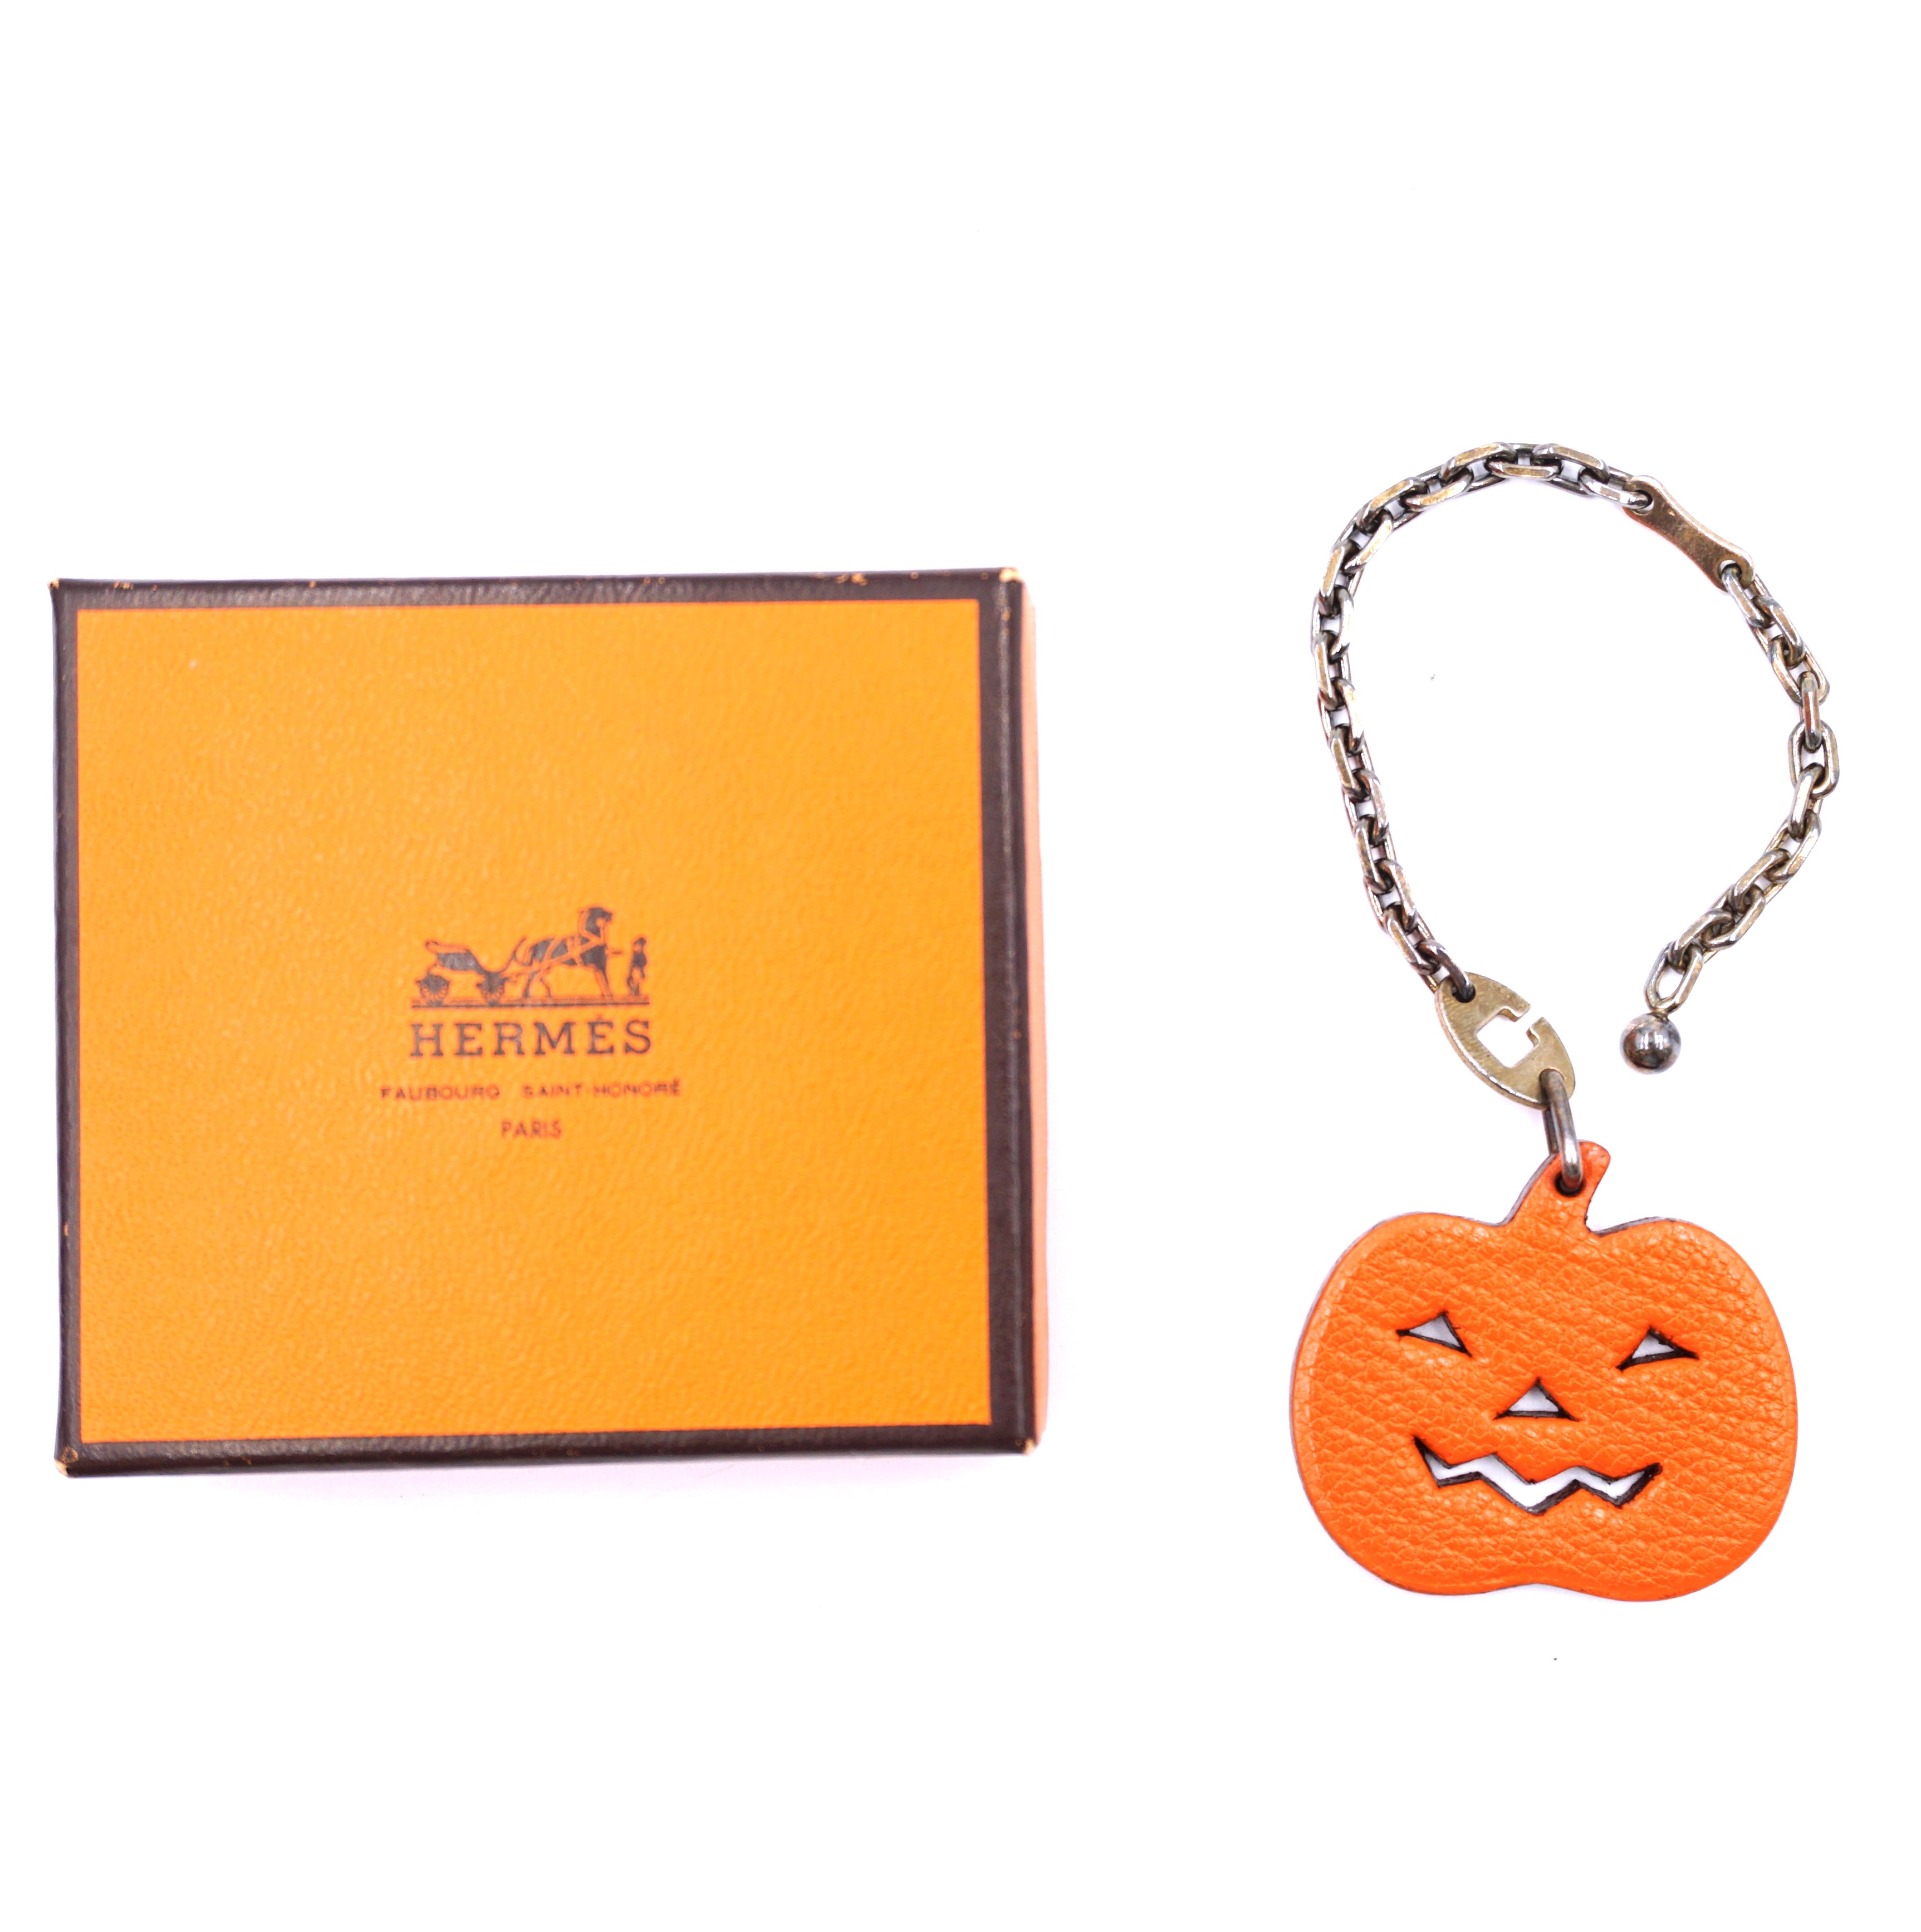 Hermès Orange Halloween Pumpkin Chain For Charm